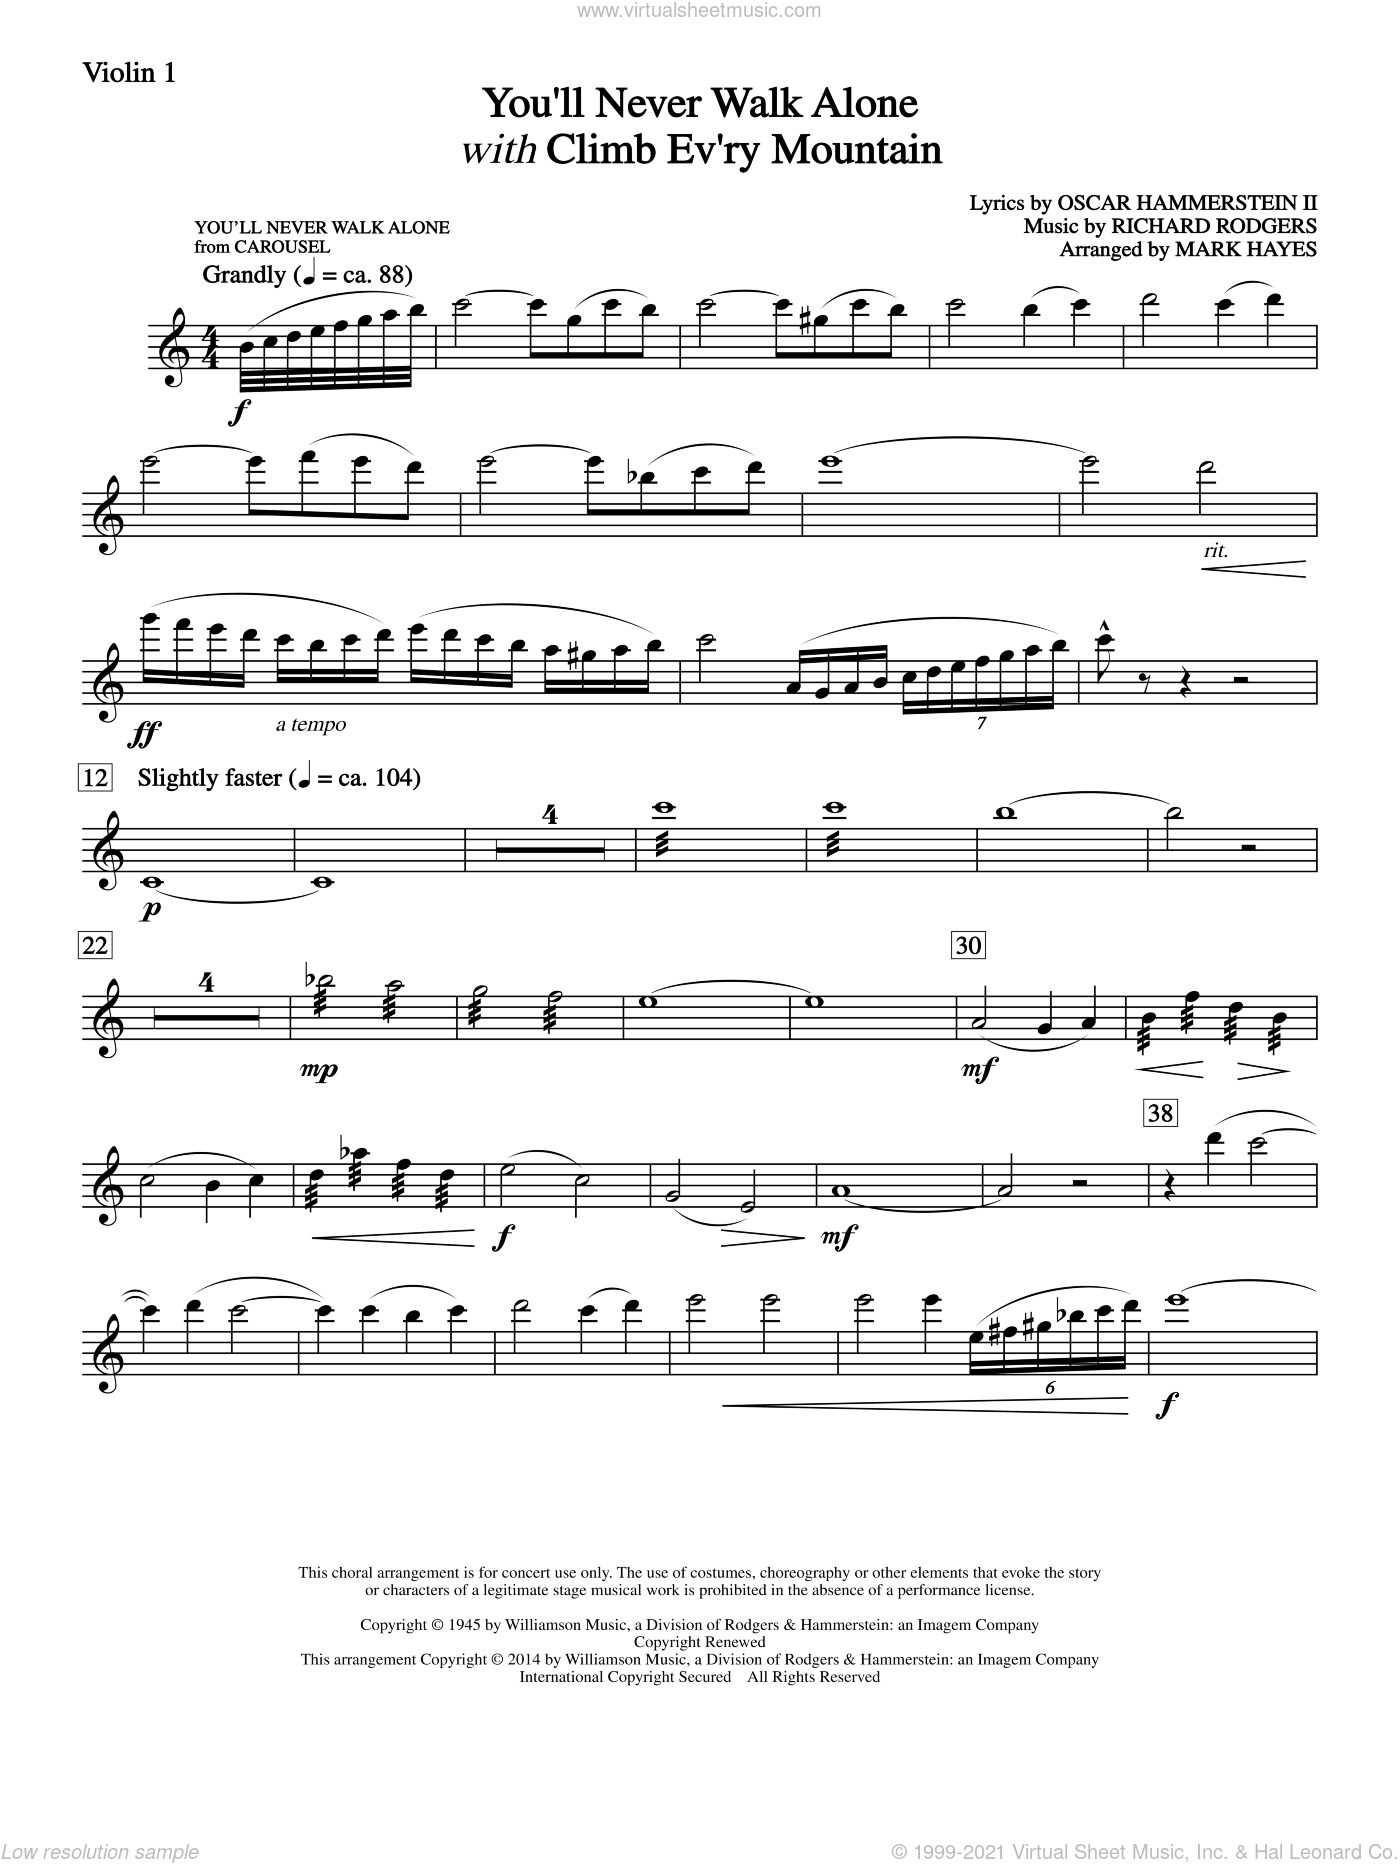 You'll Never Walk Alone (with Climb Every Mountain) sheet music for orchestra/band (violin 1) by Richard Rodgers, Margery McKay, Patricia Neway, Tony Bennett, Mark Hayes and Oscar II Hammerstein, intermediate skill level